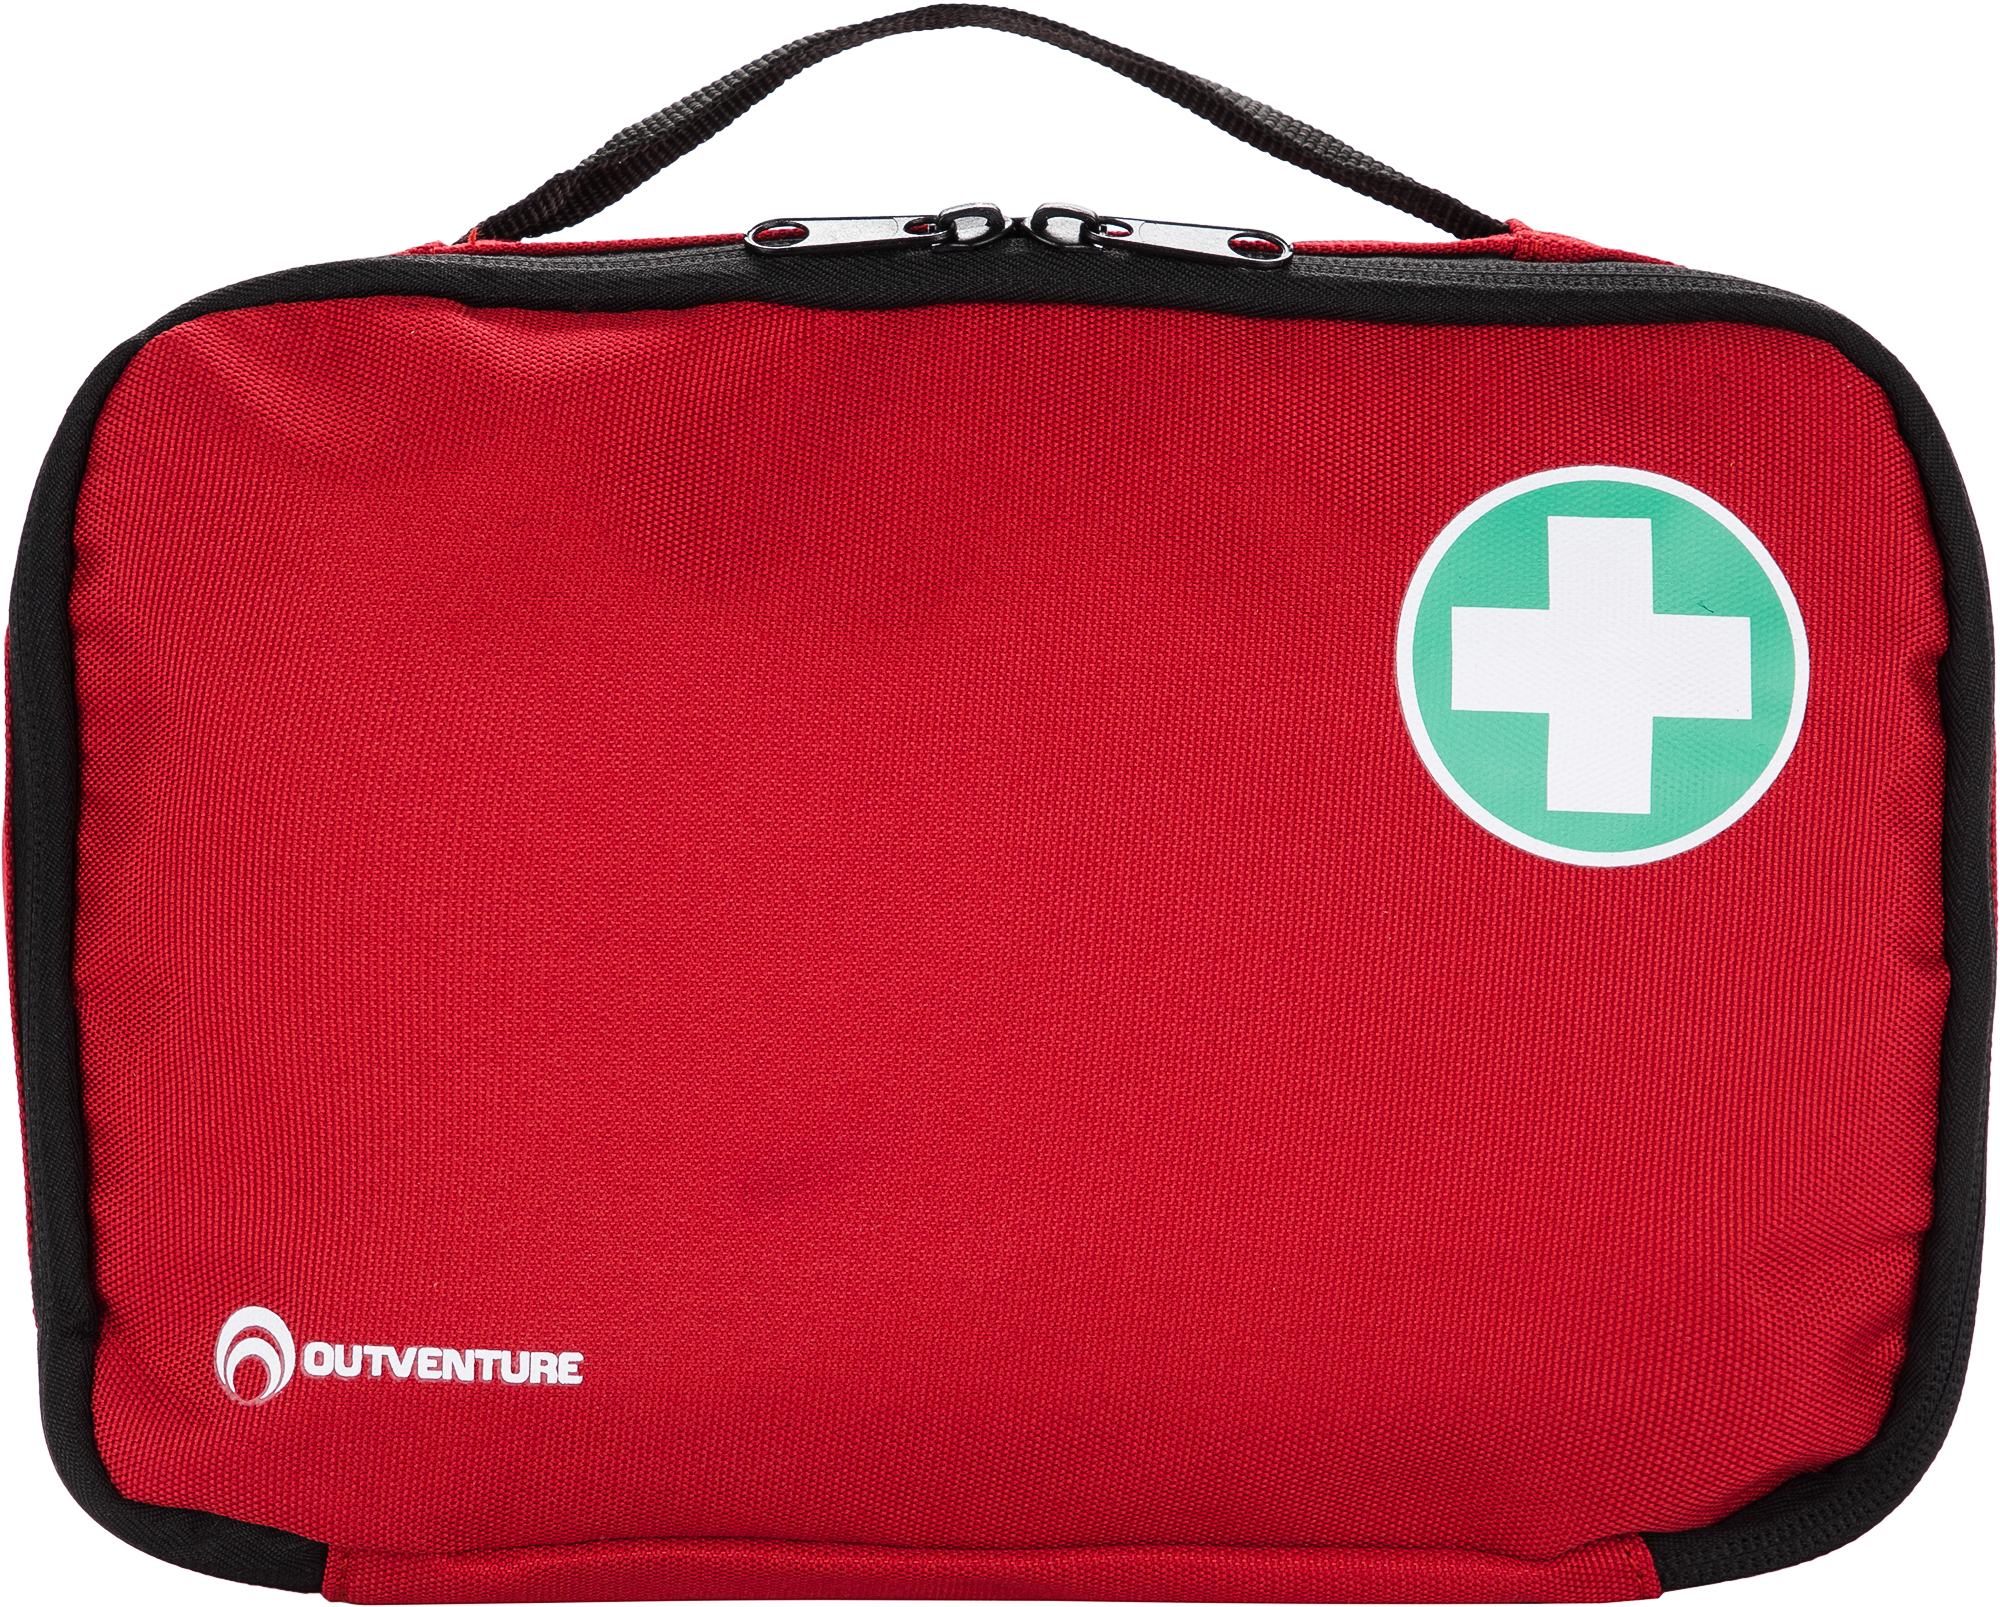 Outventure Сумка для медикаментов Outventure First aid bag